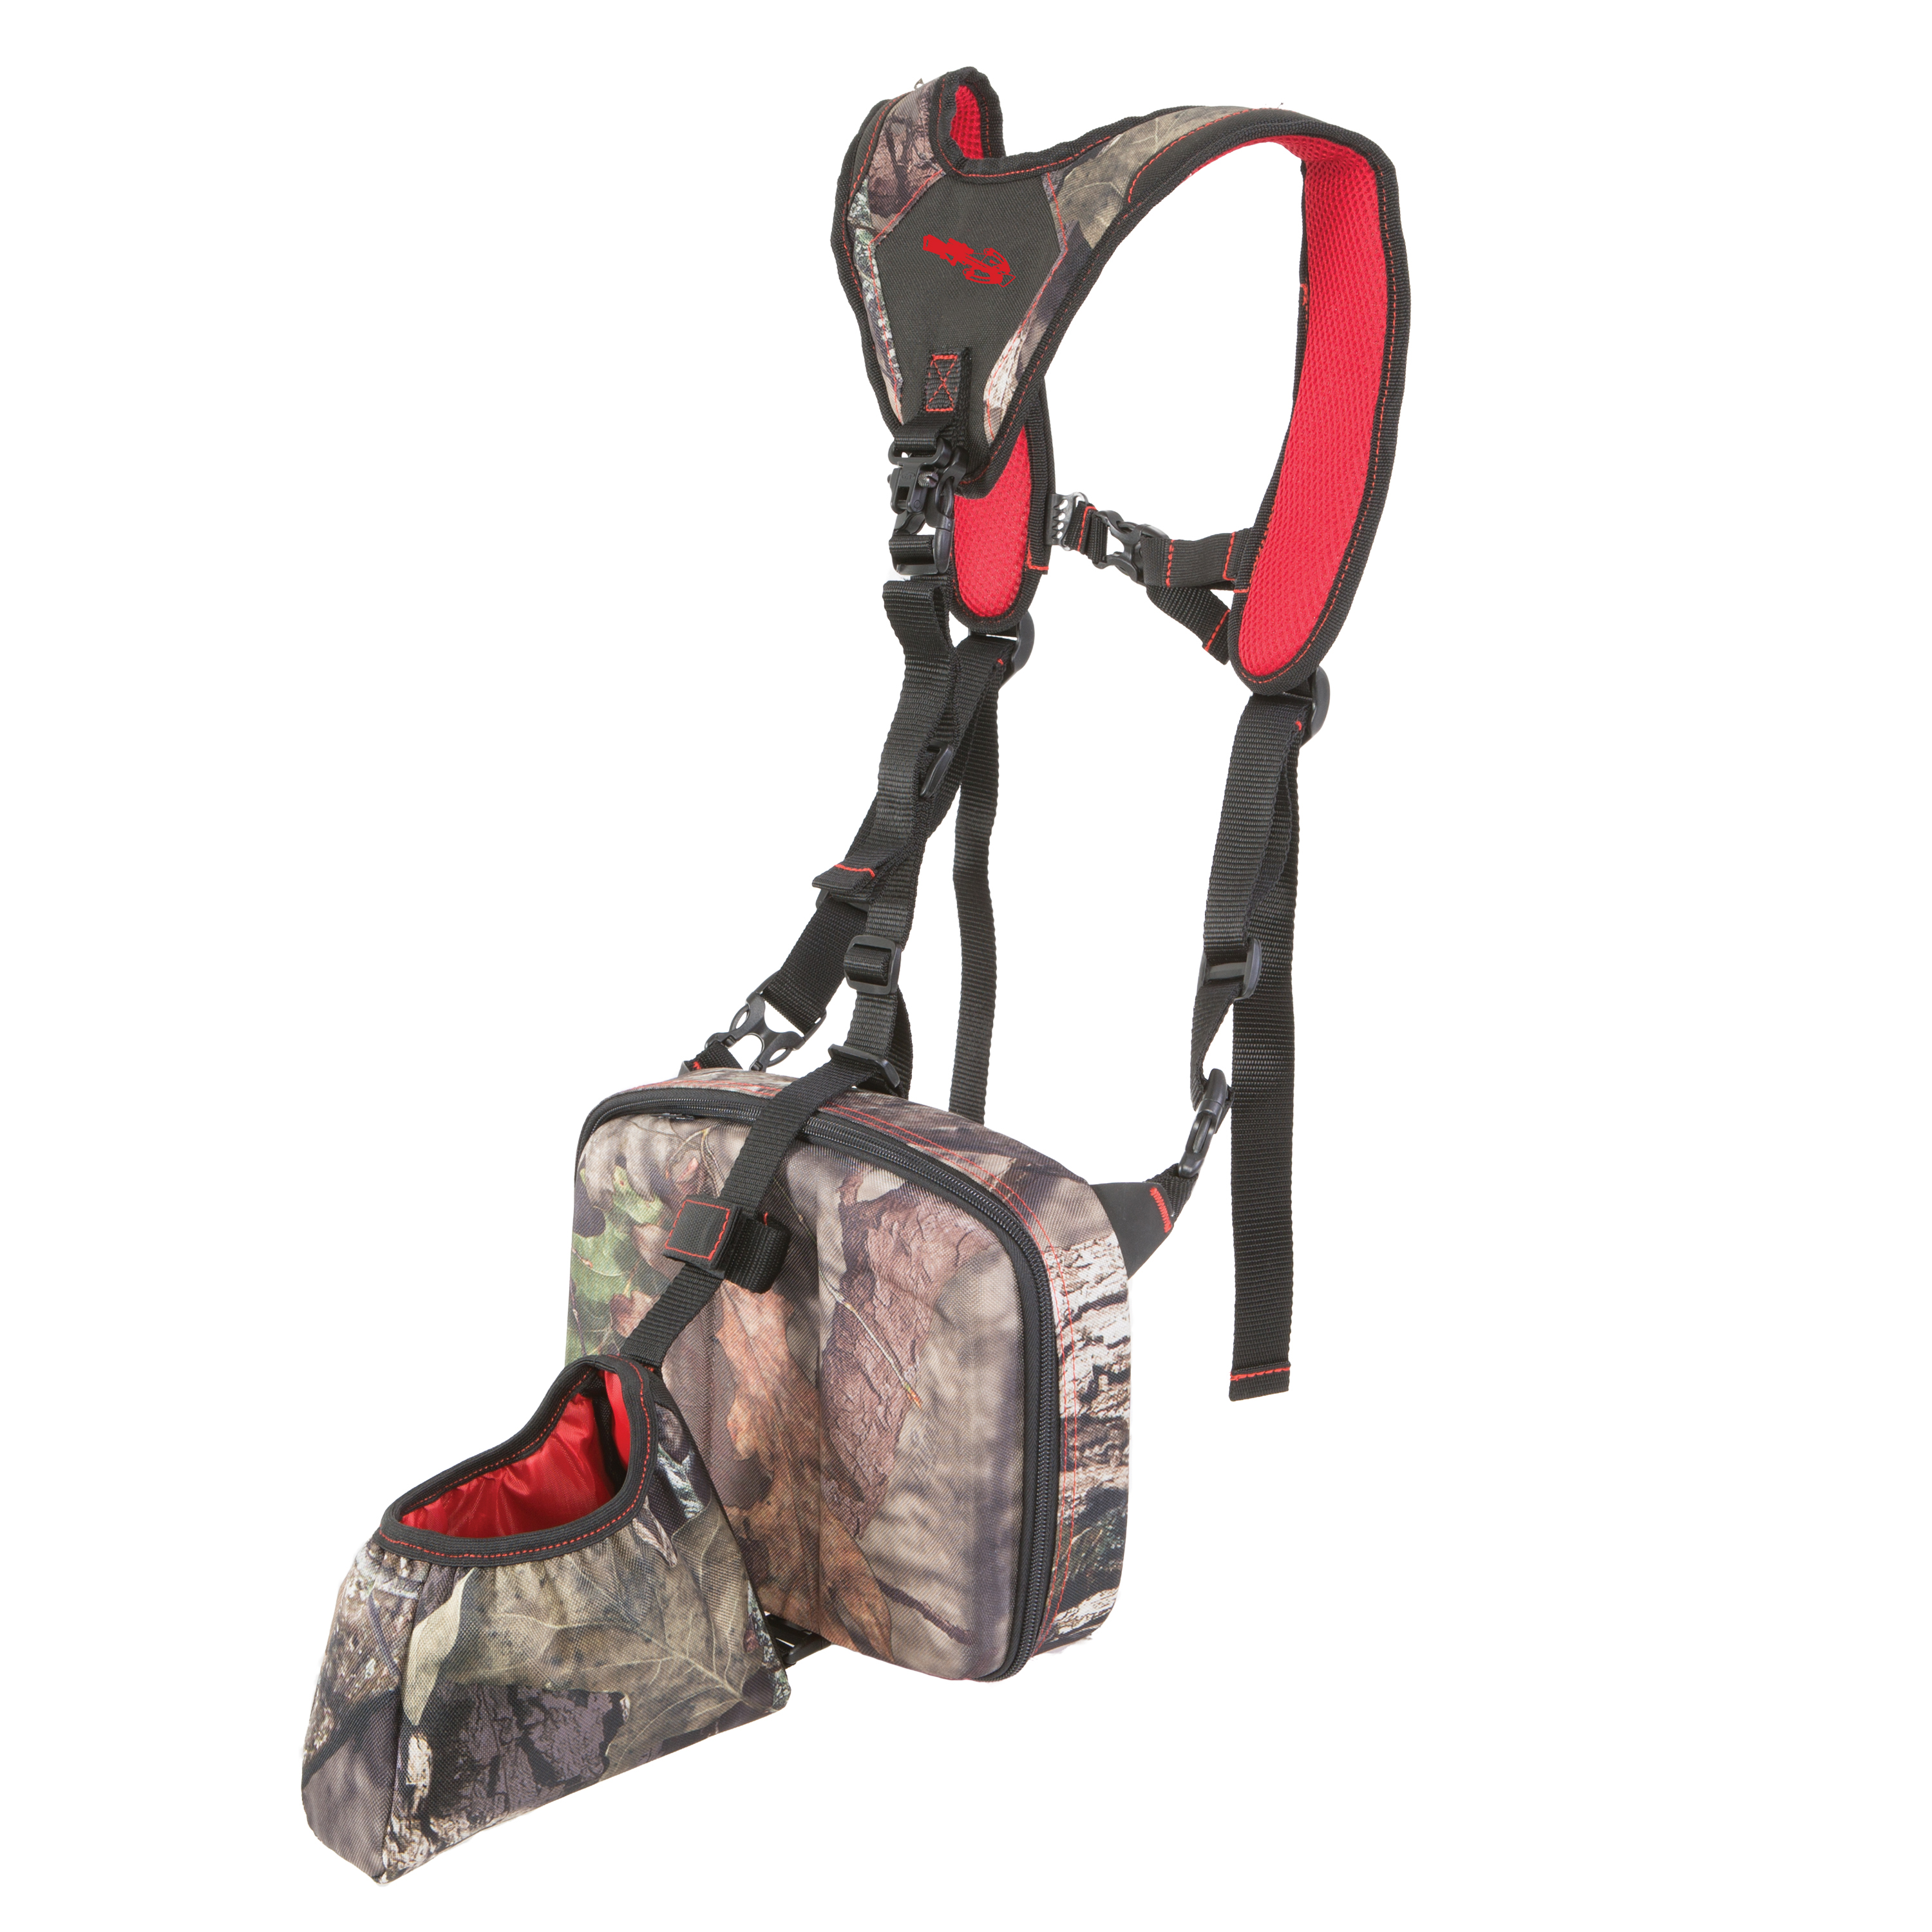 Allen Gearhub Crossbow Harness Breakup Country Camo